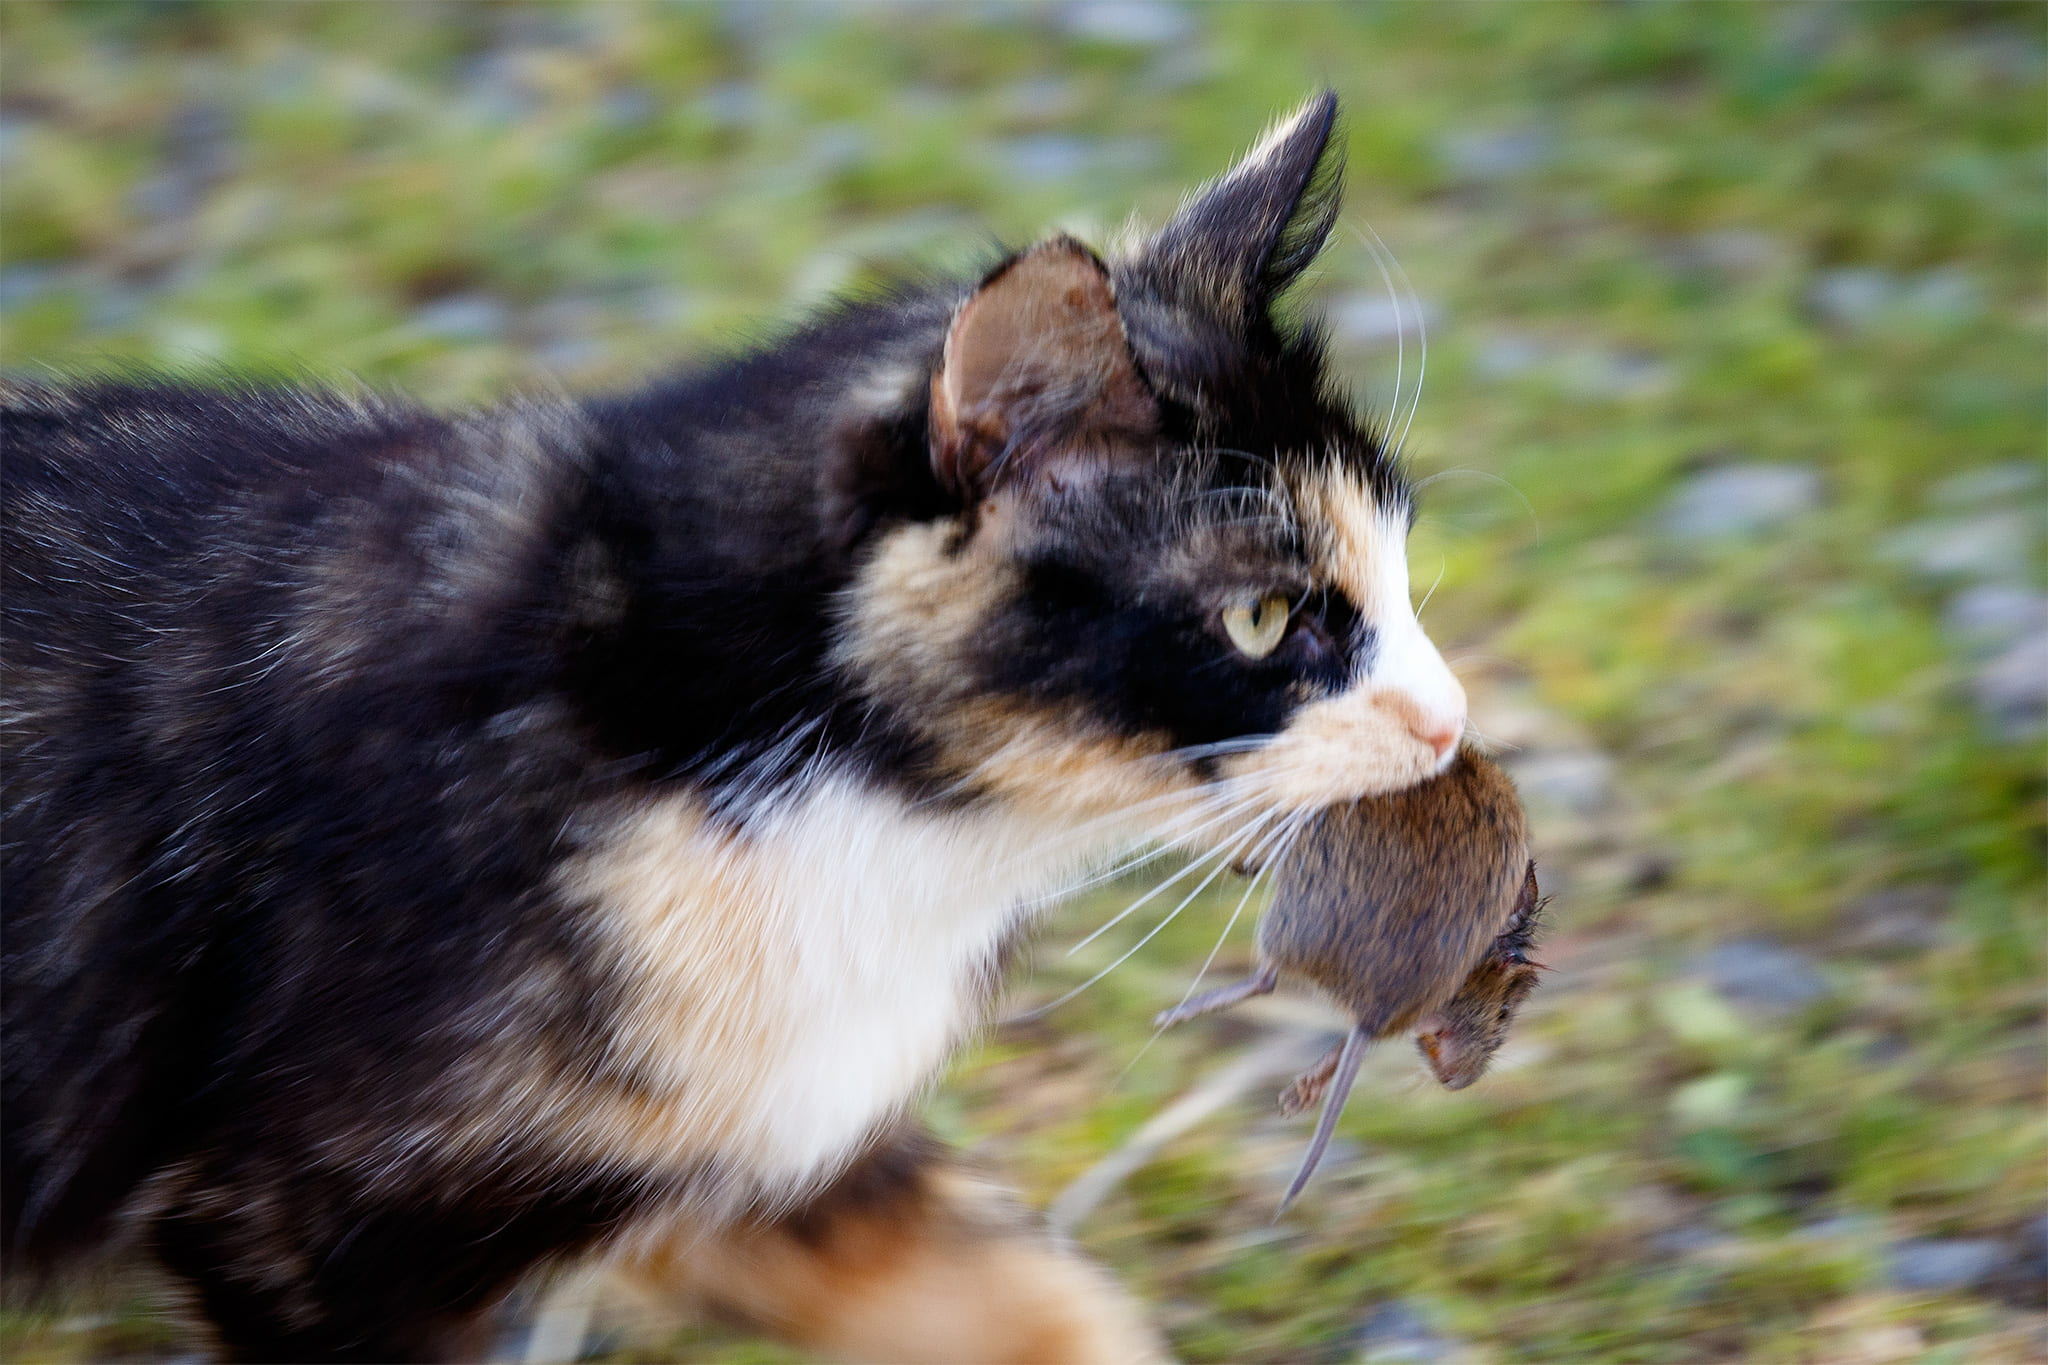 Why do cats carry dead animals home